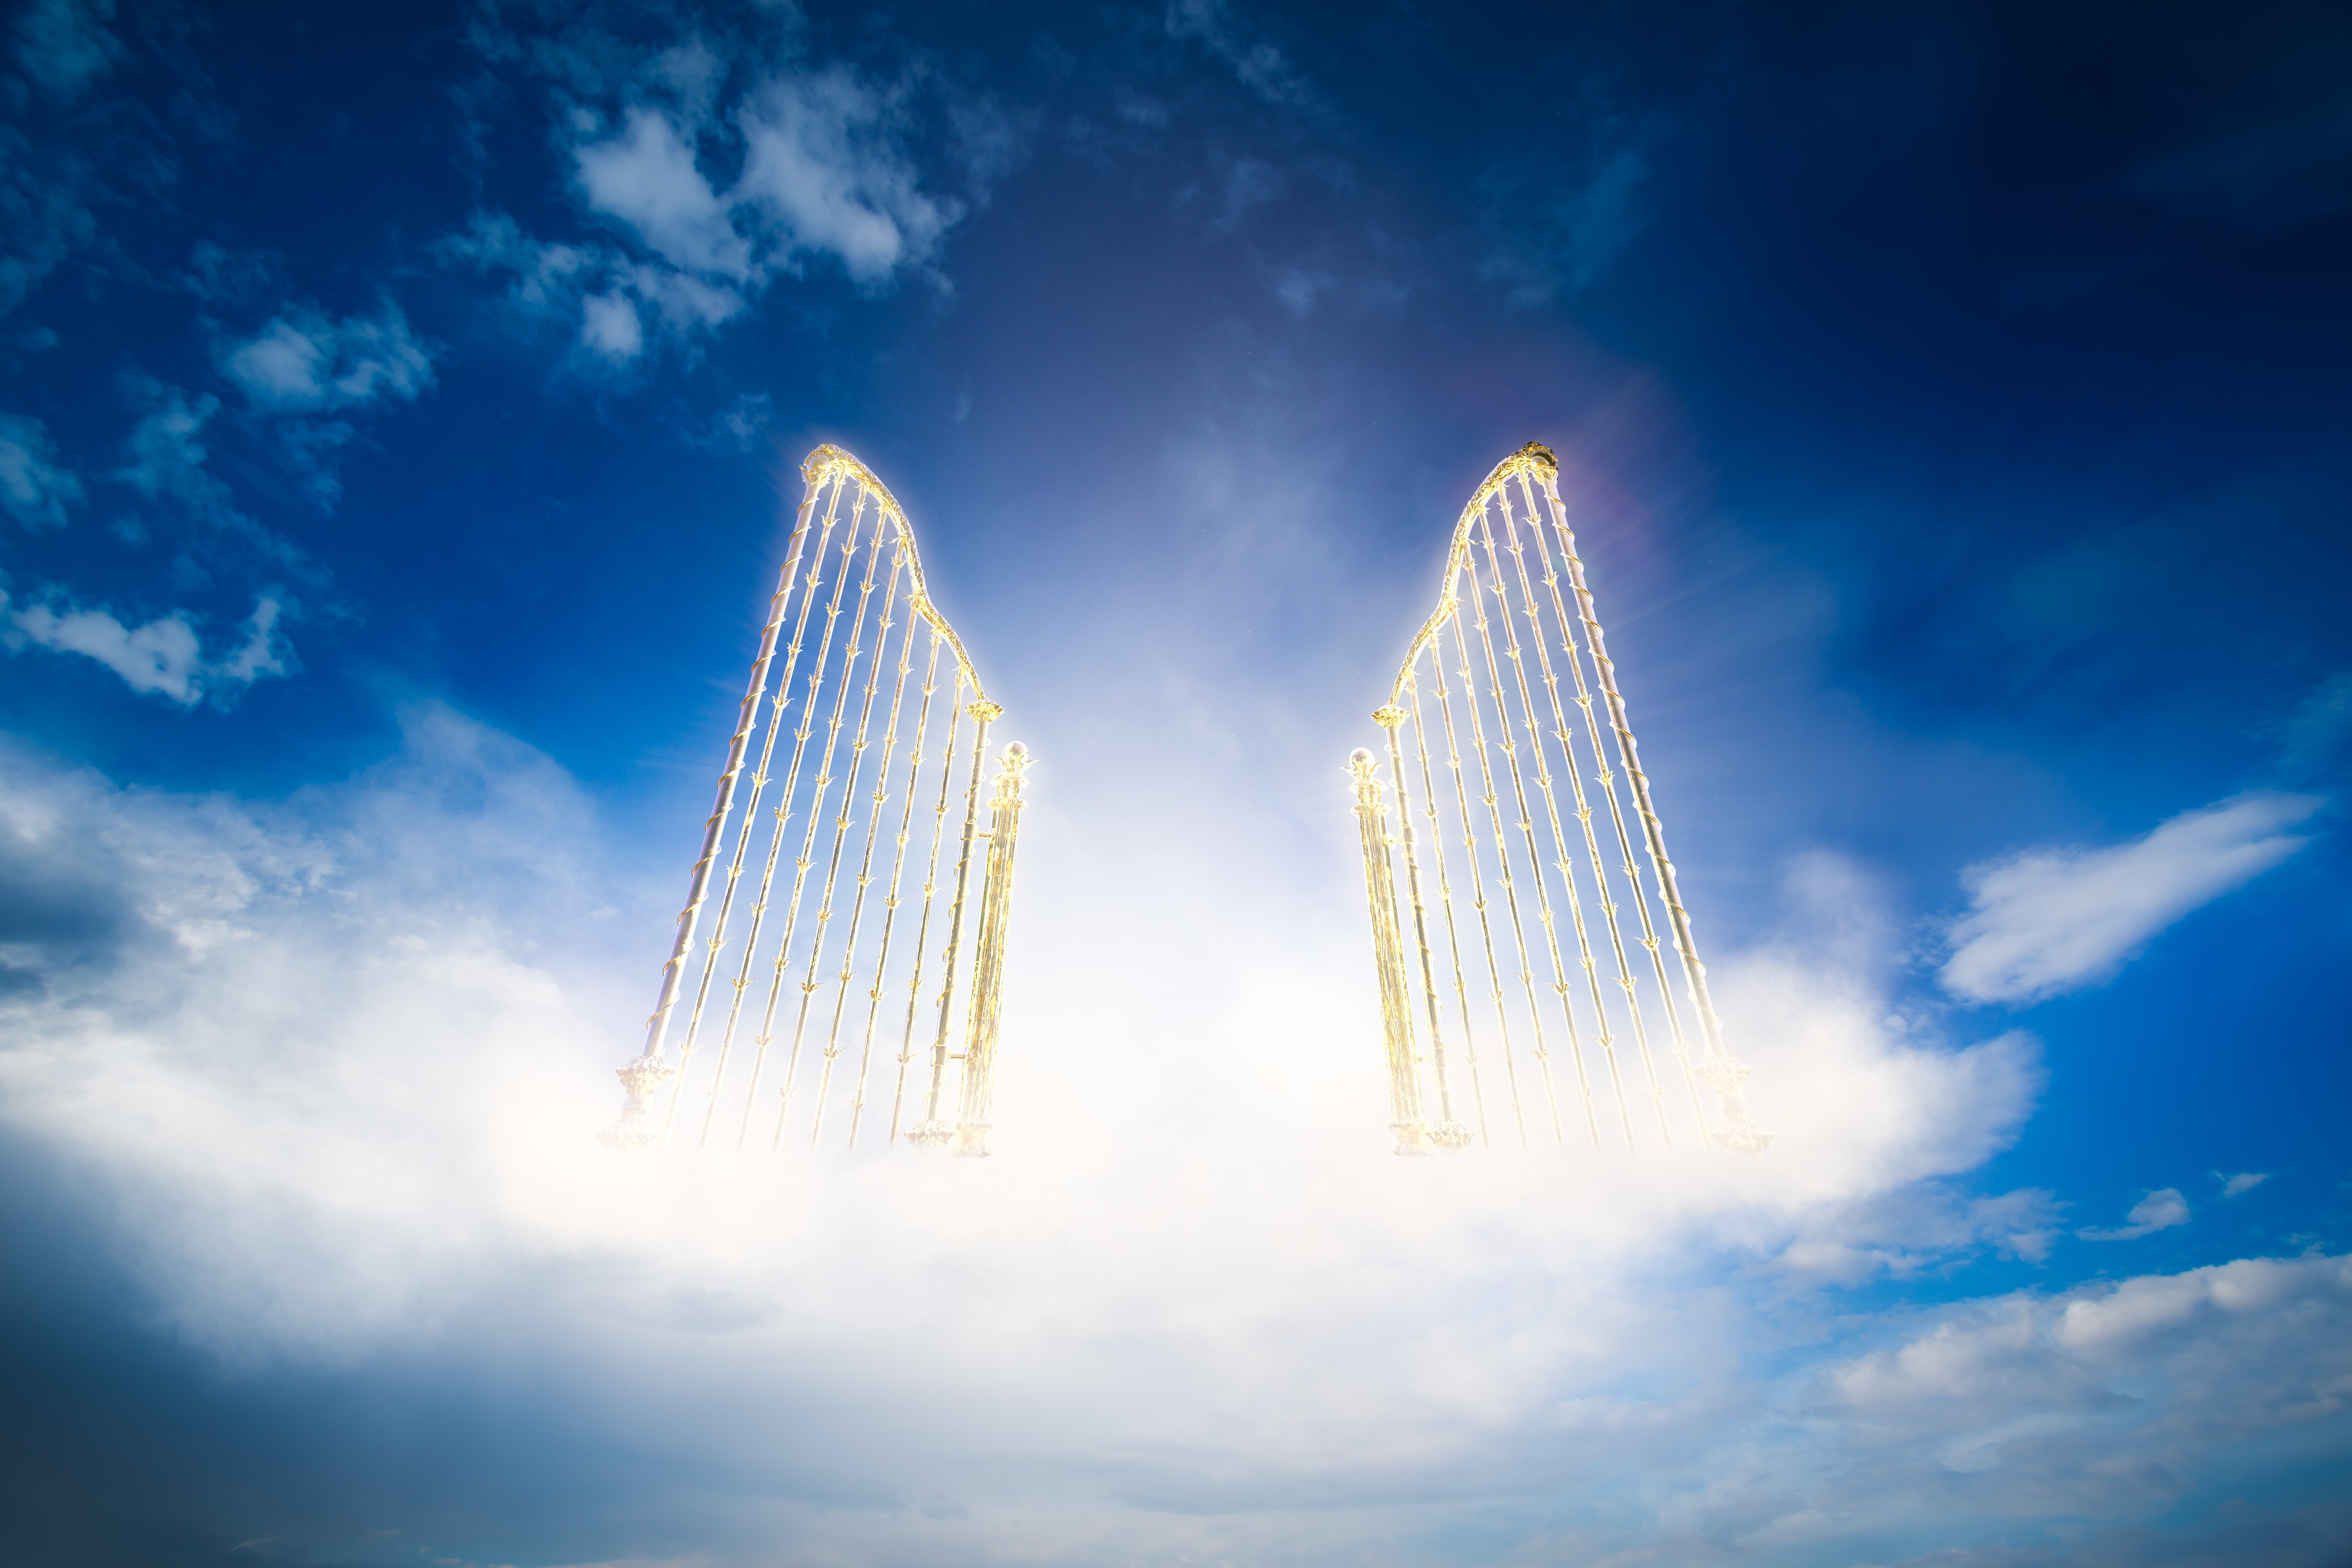 Clouds and heaven's gates   Photo: Shutterstock